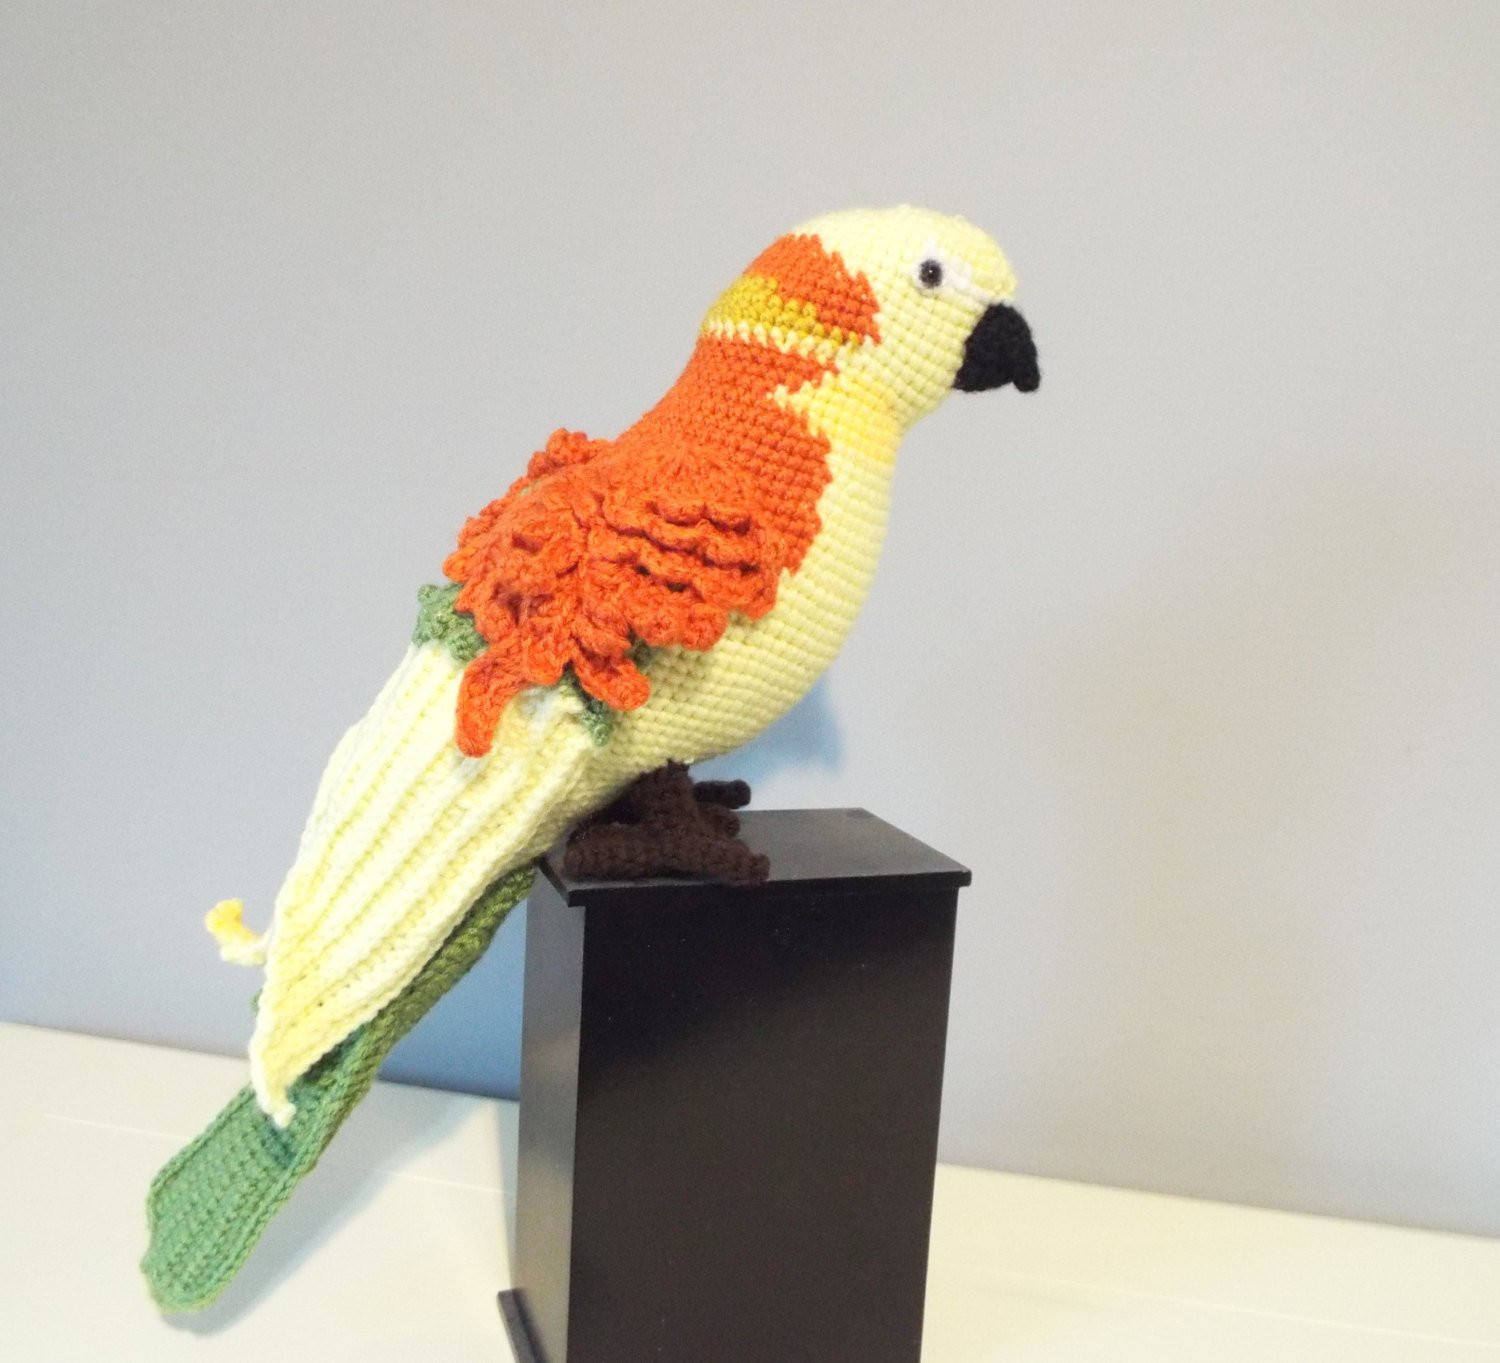 Crochet Stuffed Animals Awesome Crochet Parrot Sun Conure Stuffed Animals by Crochettoyscorner Of Incredible 42 Images Crochet Stuffed Animals